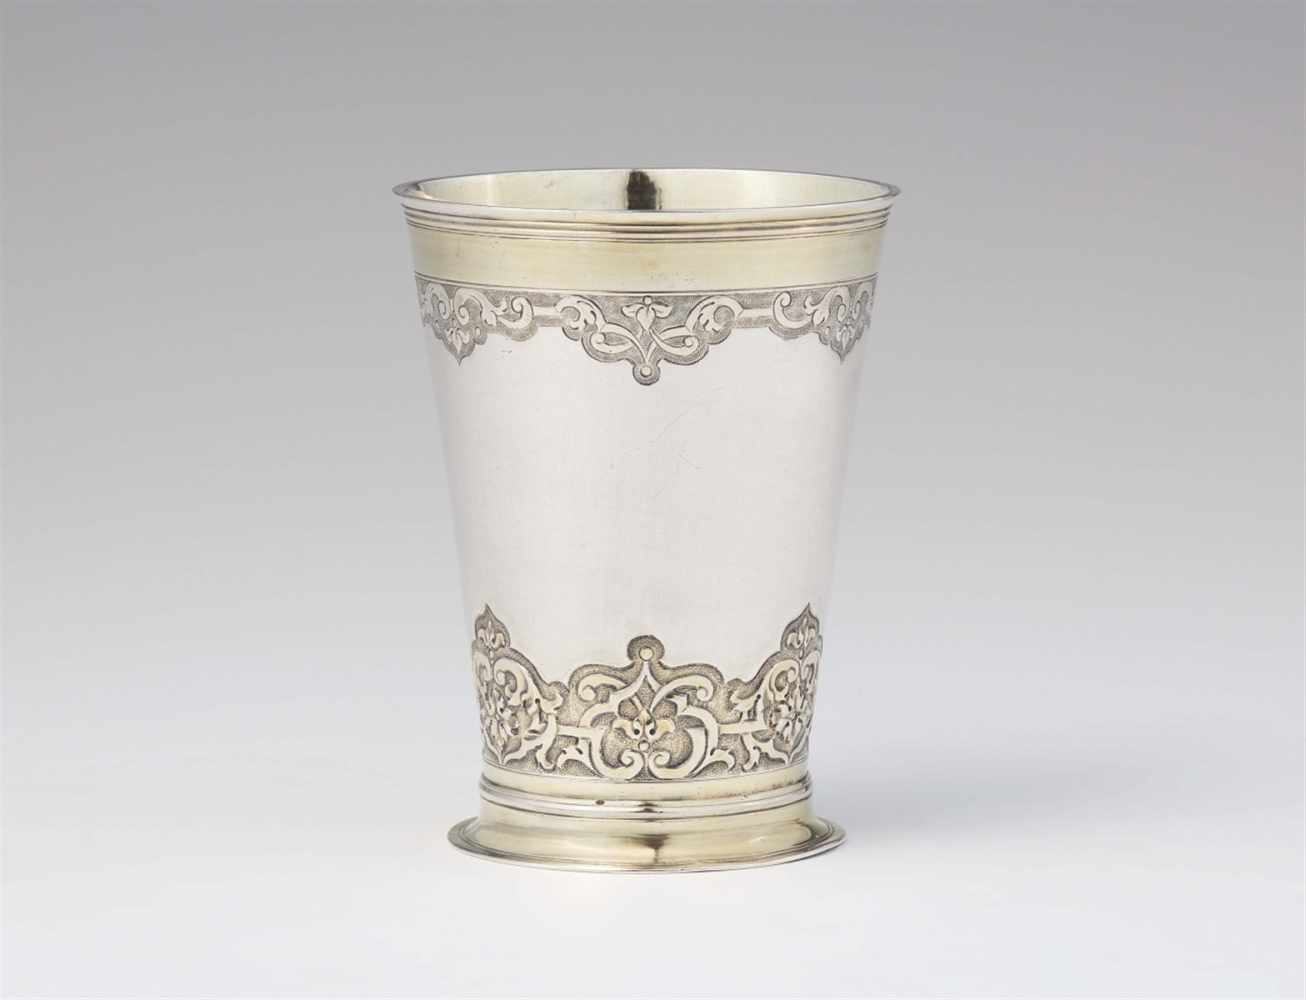 Lot 326 - An Augsburg Régence parcel gilt silver beakerTapering beaker on waisted basal ring, decorated with